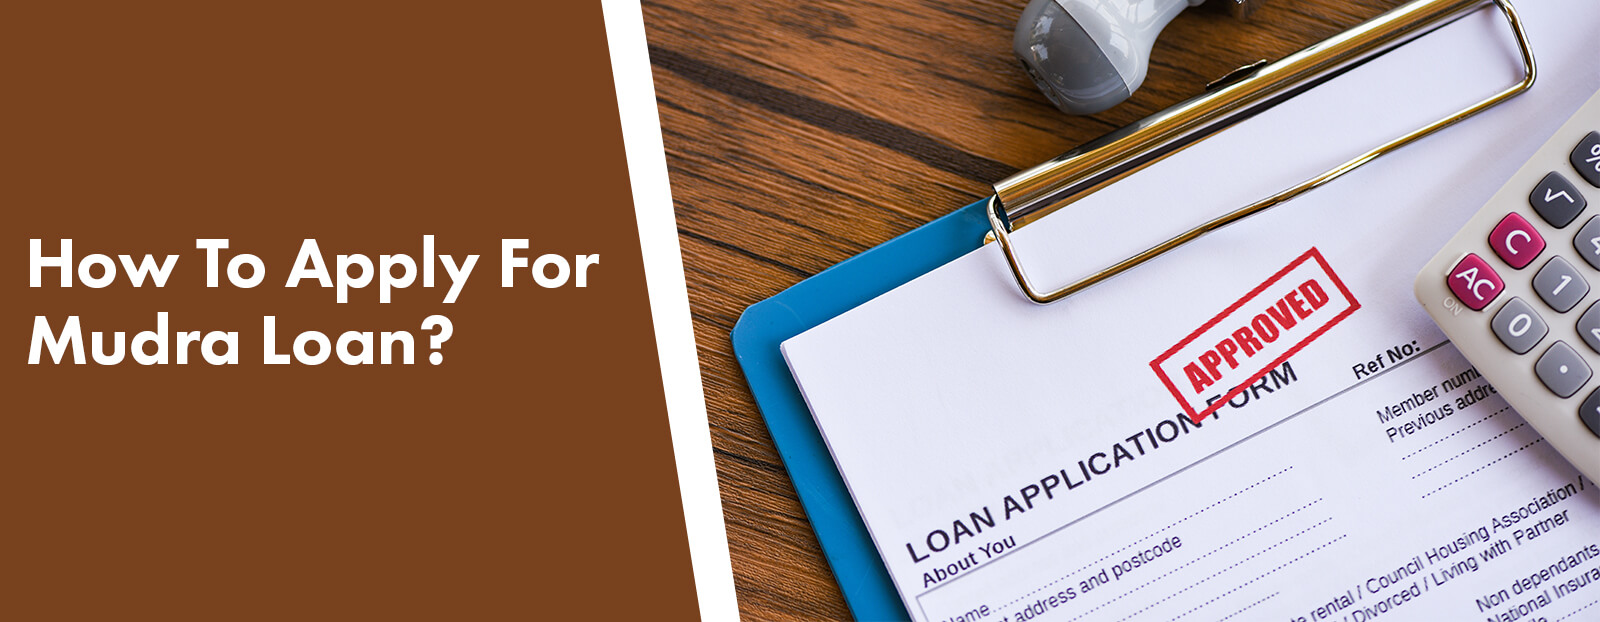 How To Apply For Mudra Loan?